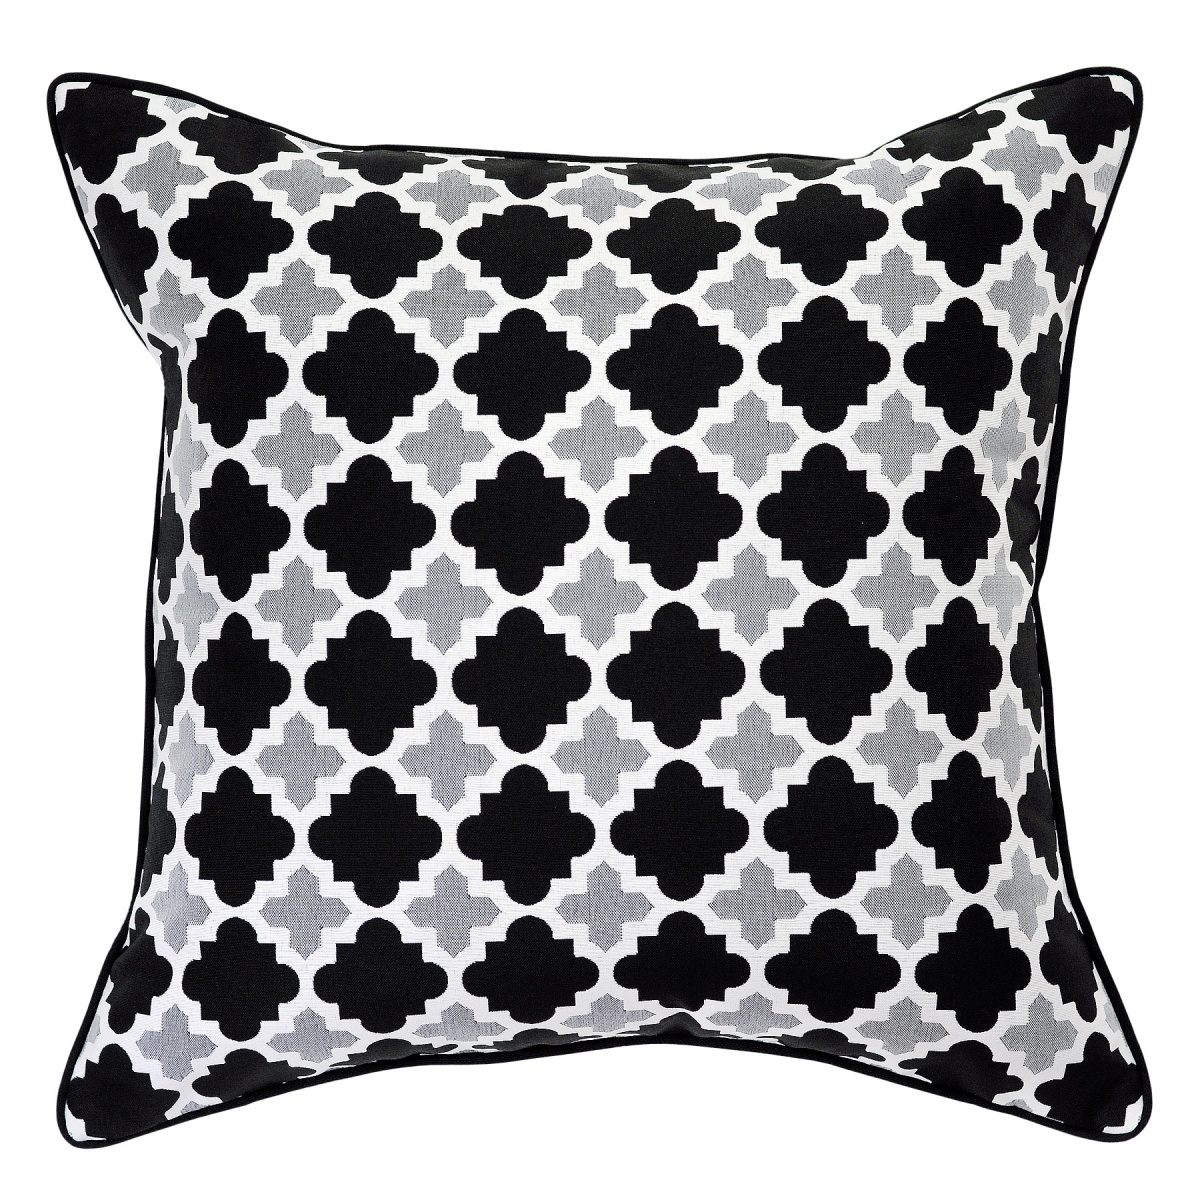 Bells Beach Ash Outdoor Cushion with Black Piping - 55x55cm